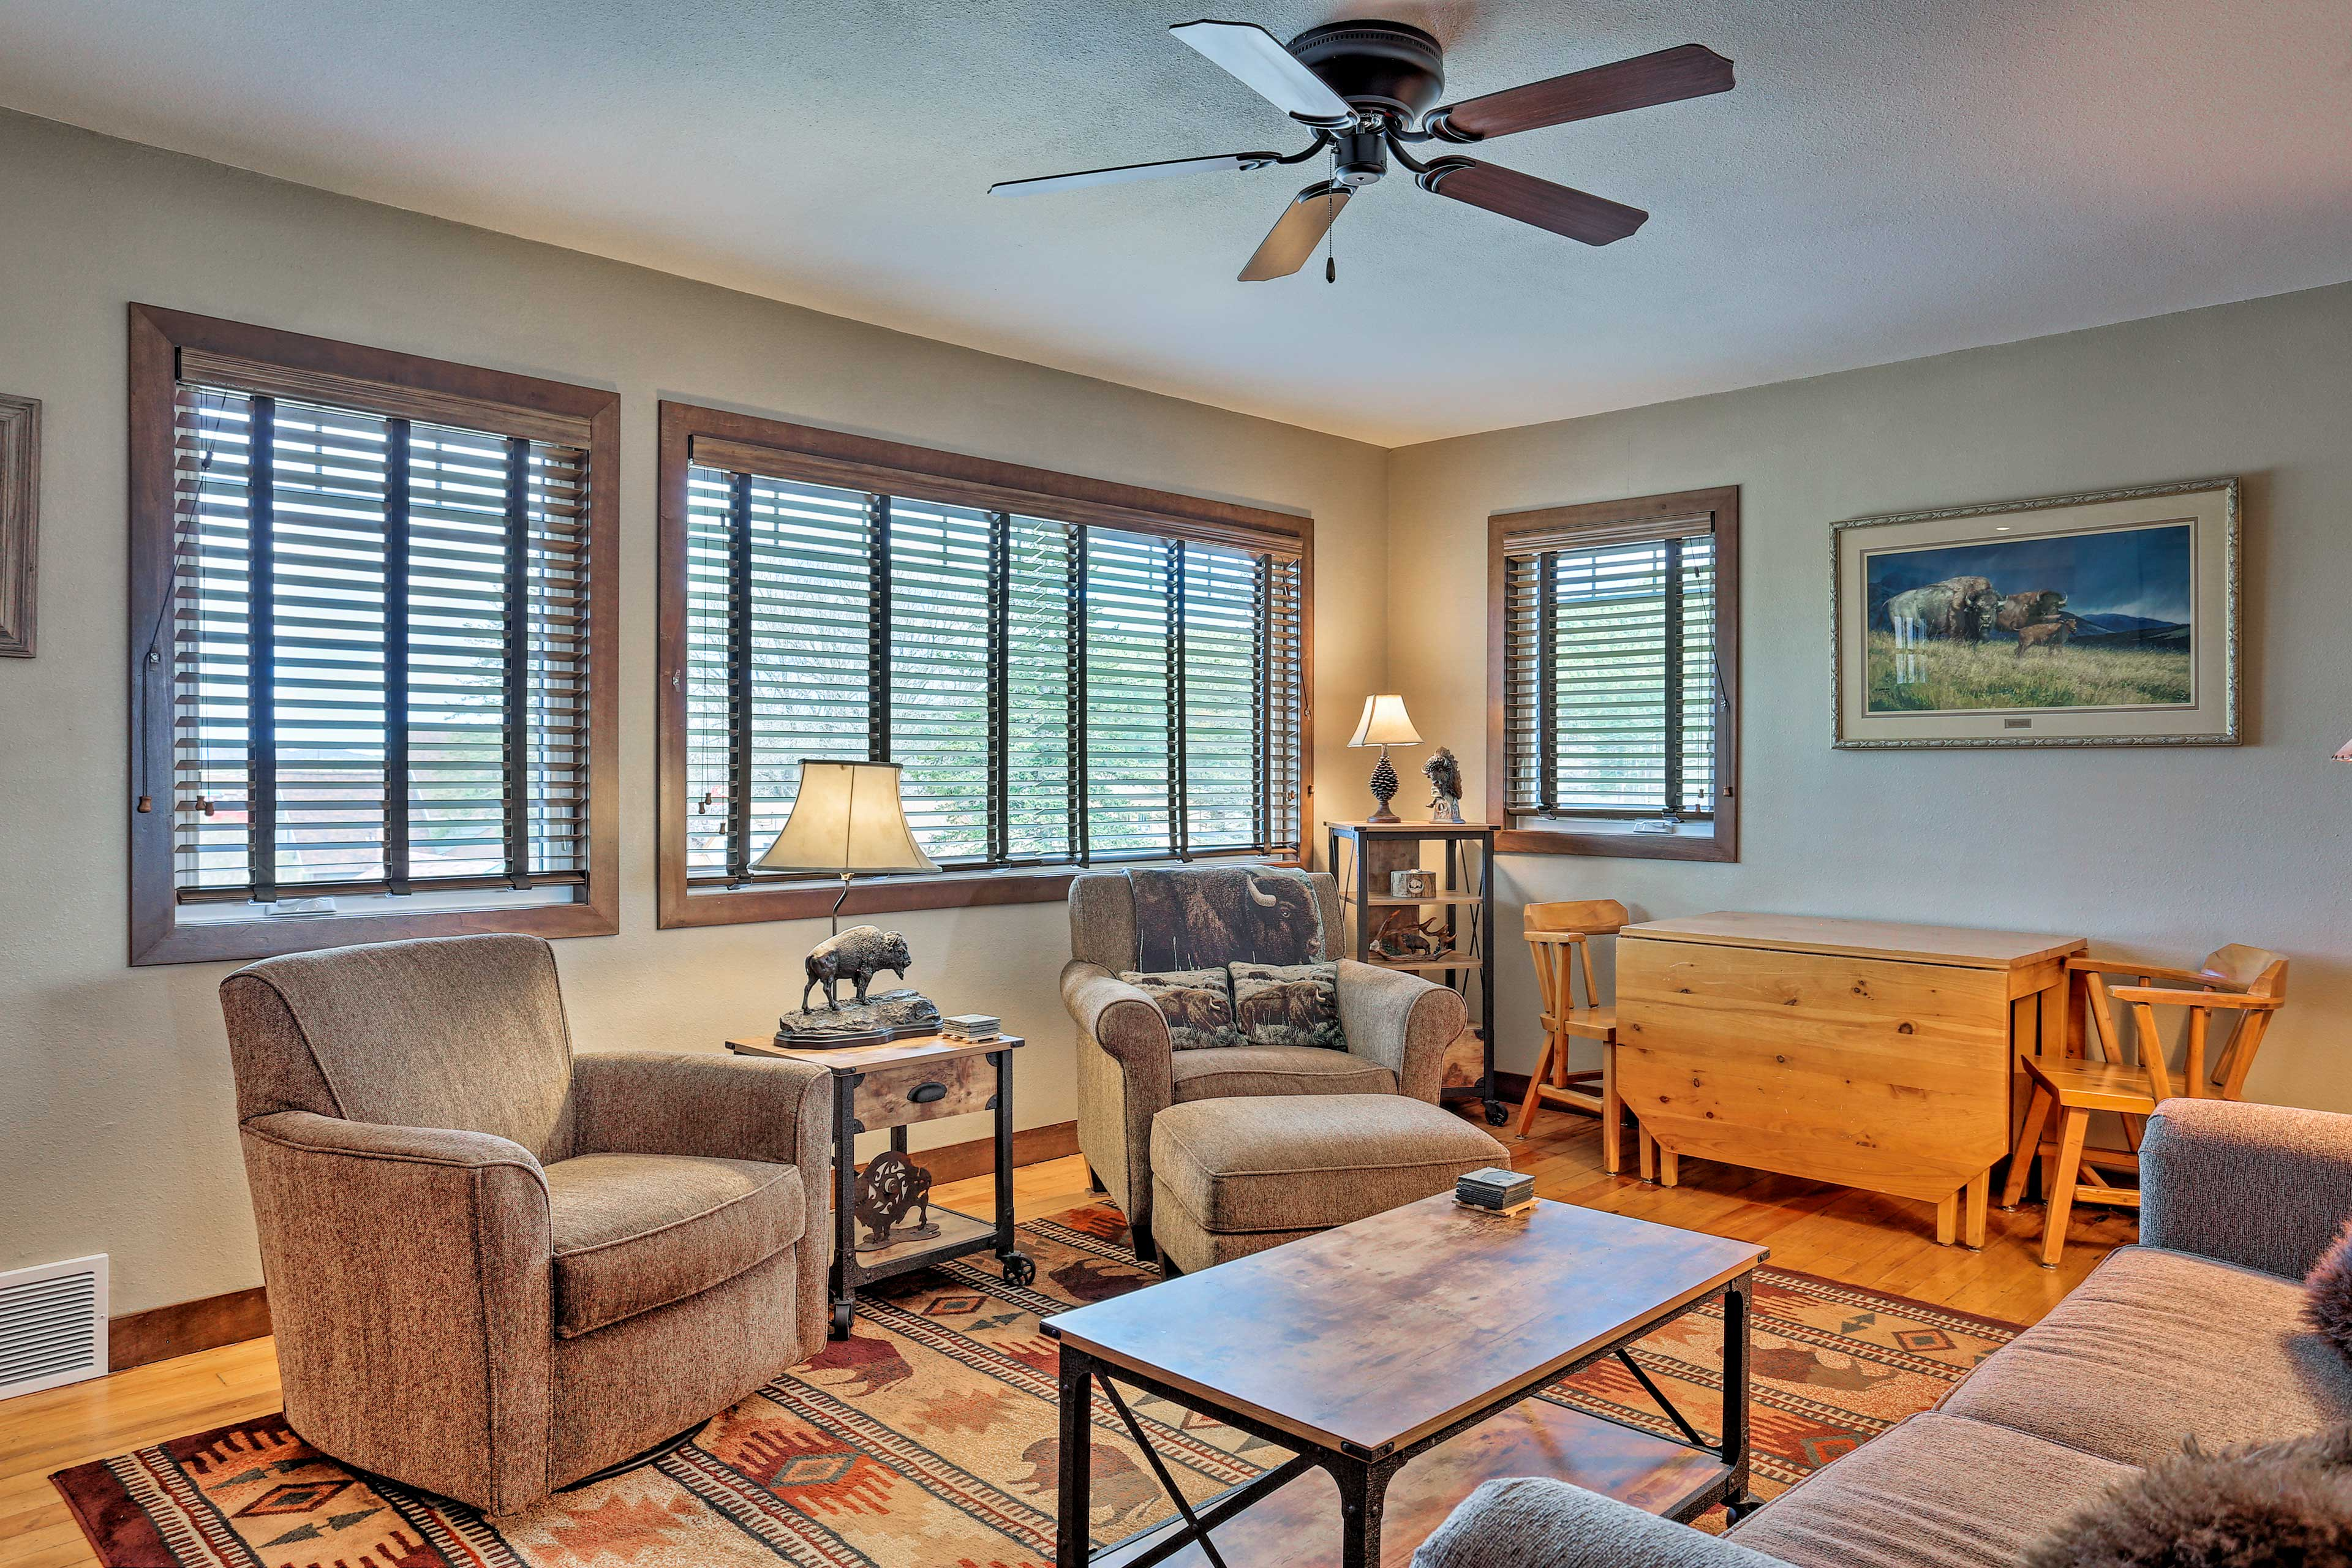 You'll be elated to relax in this cozy interior after hiking adventures.